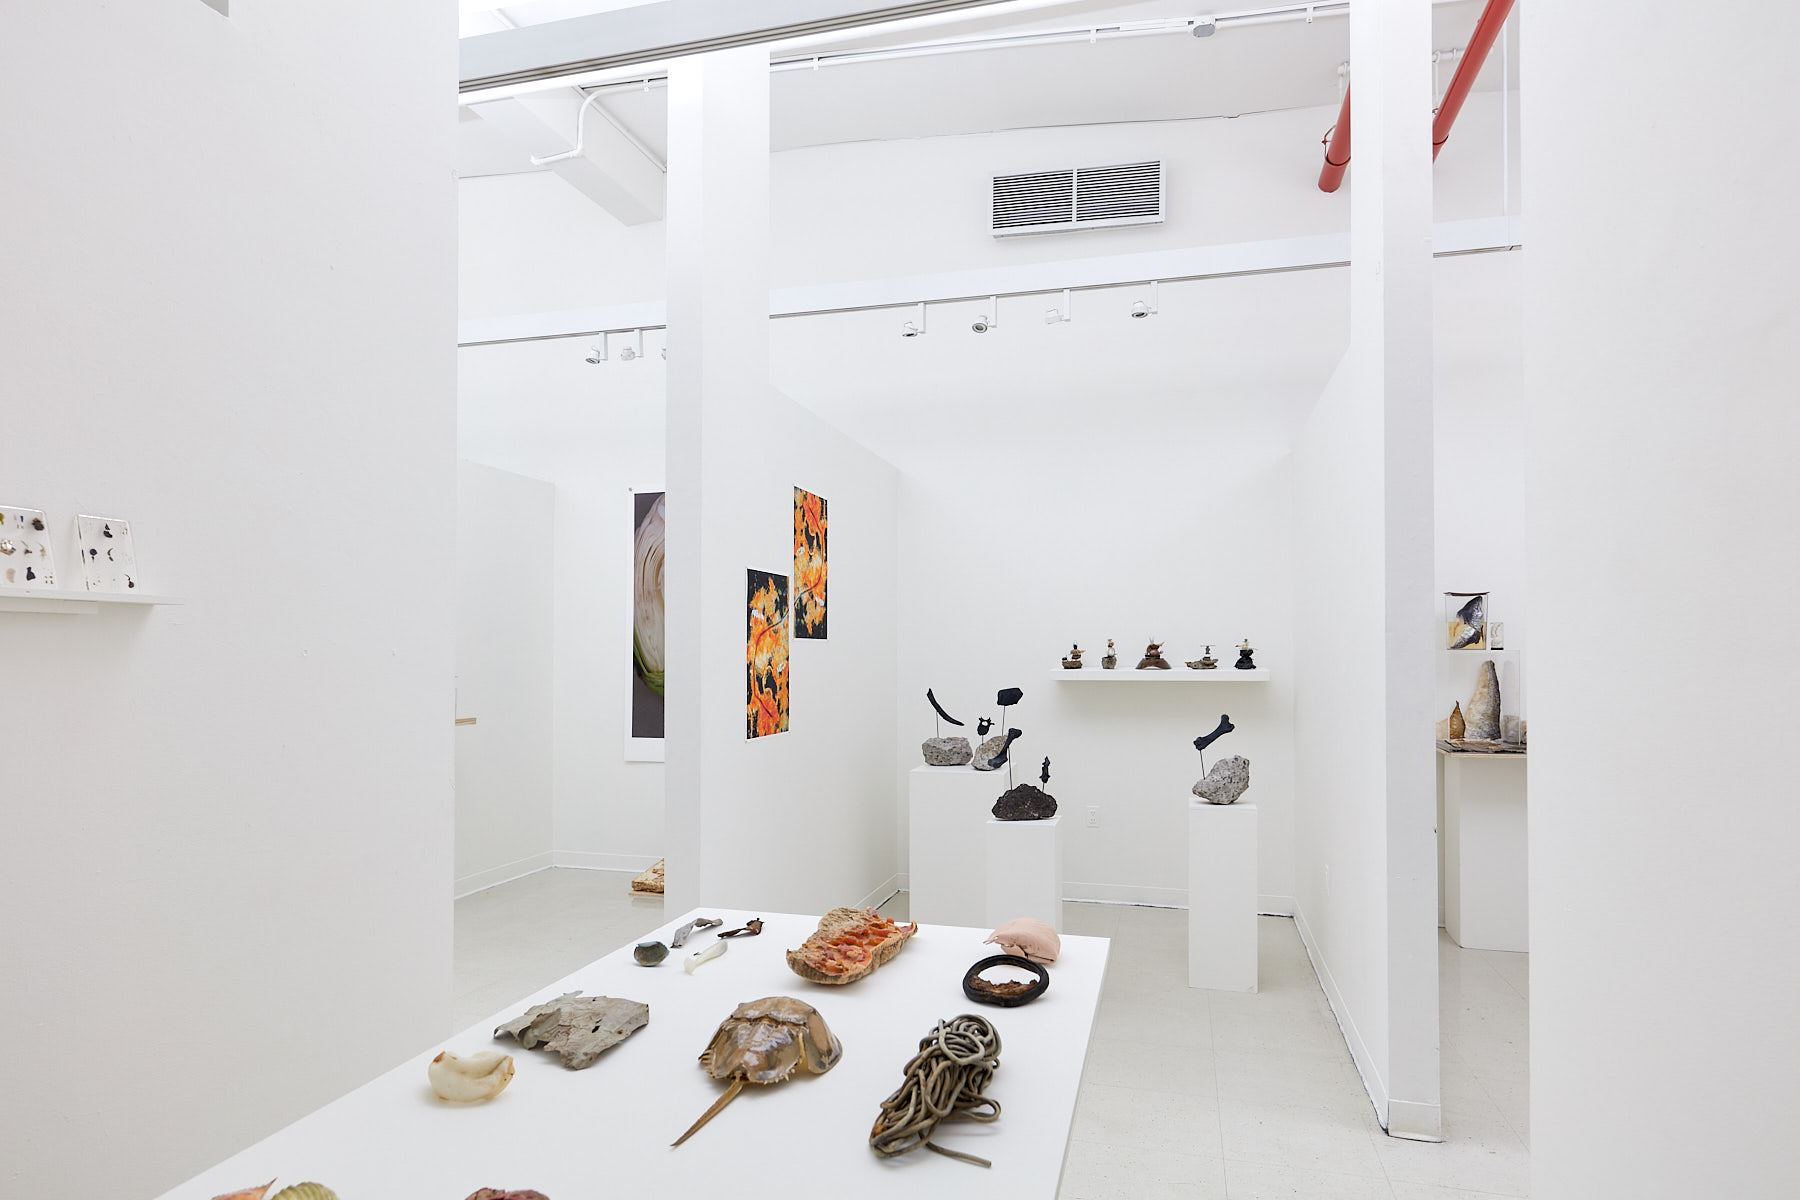 Installation view of studio cubicles, including many natural artifacts displayed on tables, shelves and pedestals